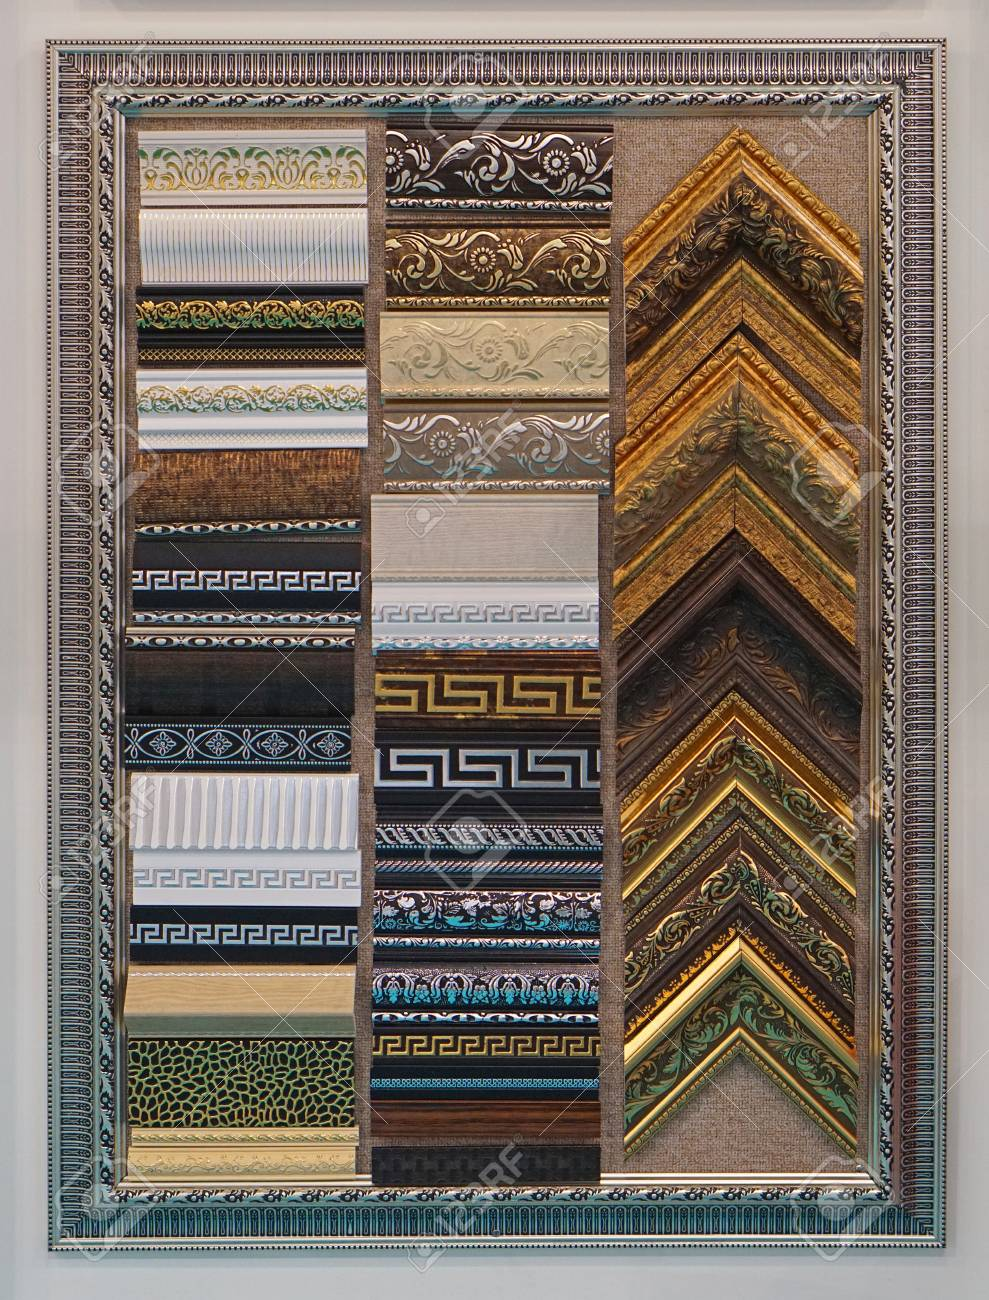 Picture Frames And Corners Samples Art Craft Material Stock Photo